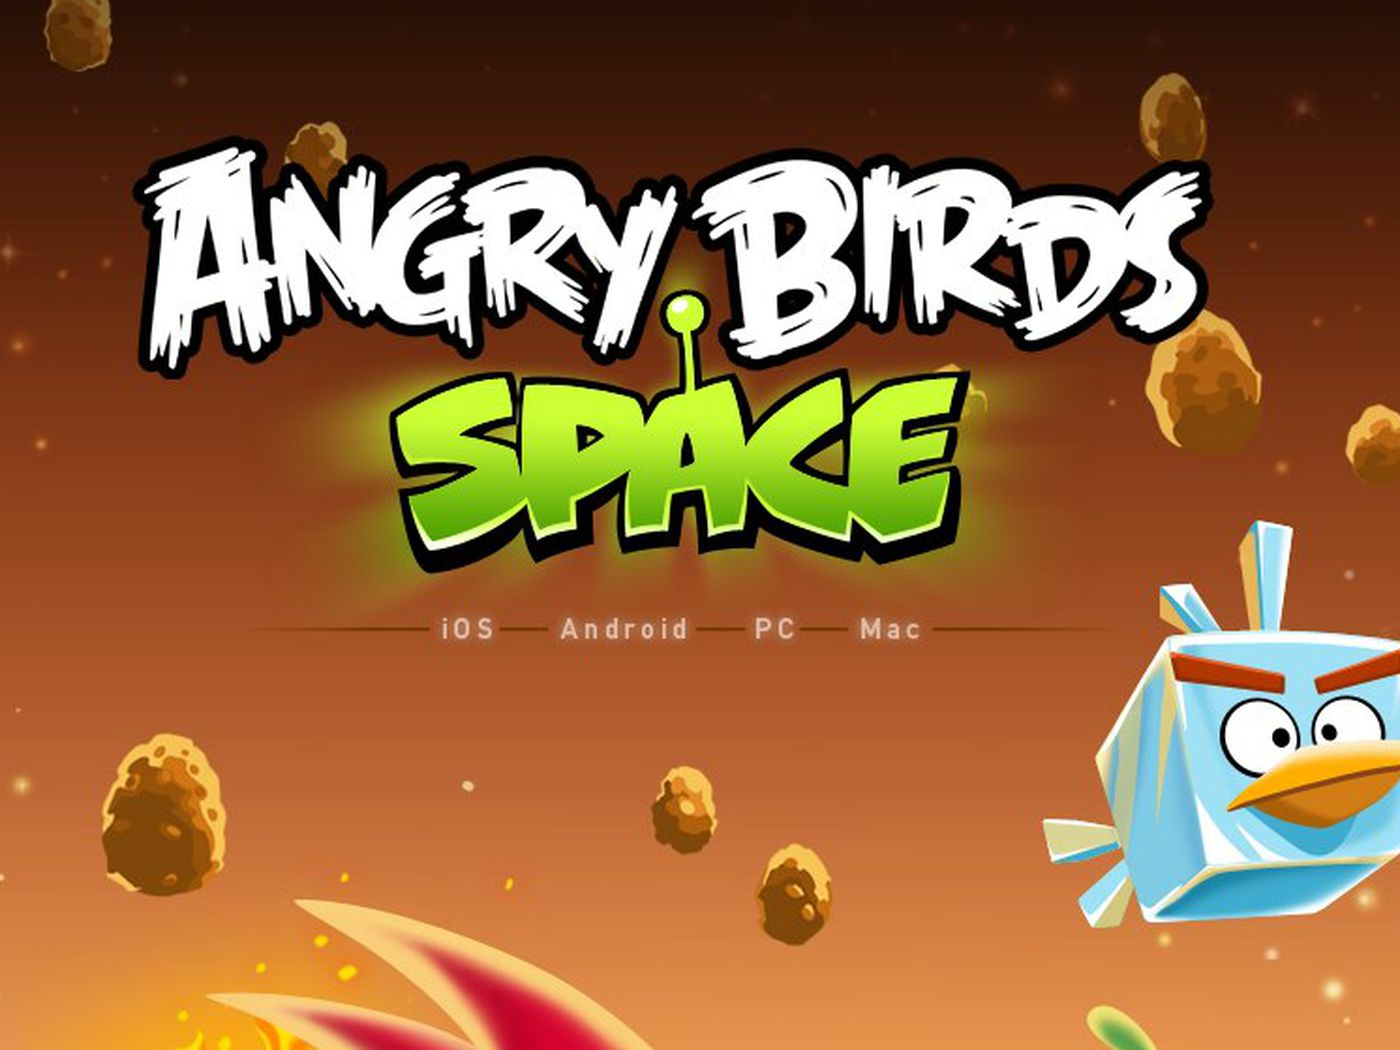 Download your games free! We'll show you how! (angry birds +.